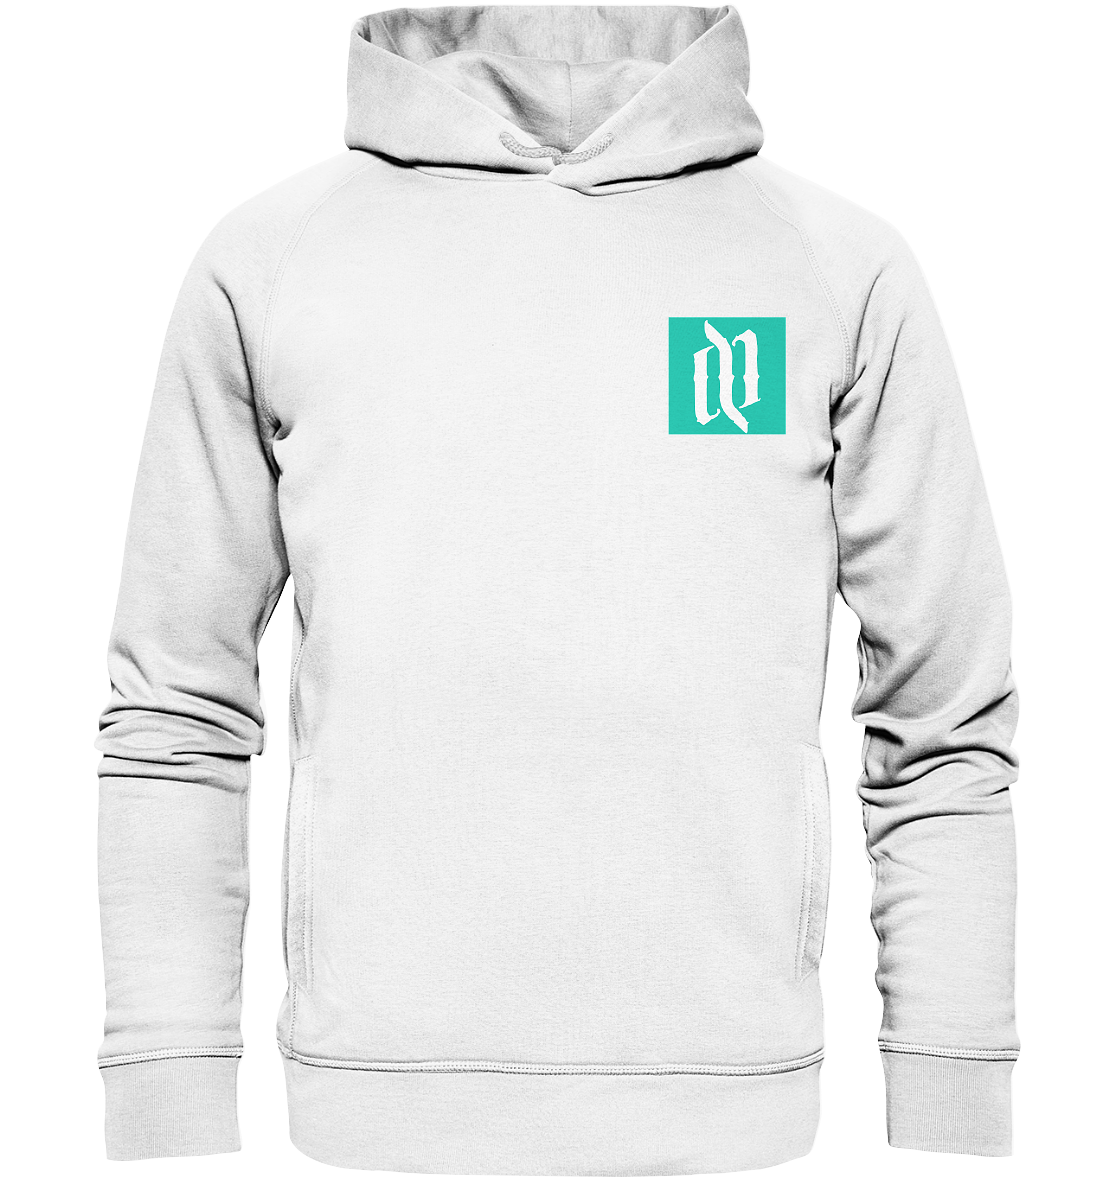 front-organic-fashion-hoodie-f8f8f8-1116x.png